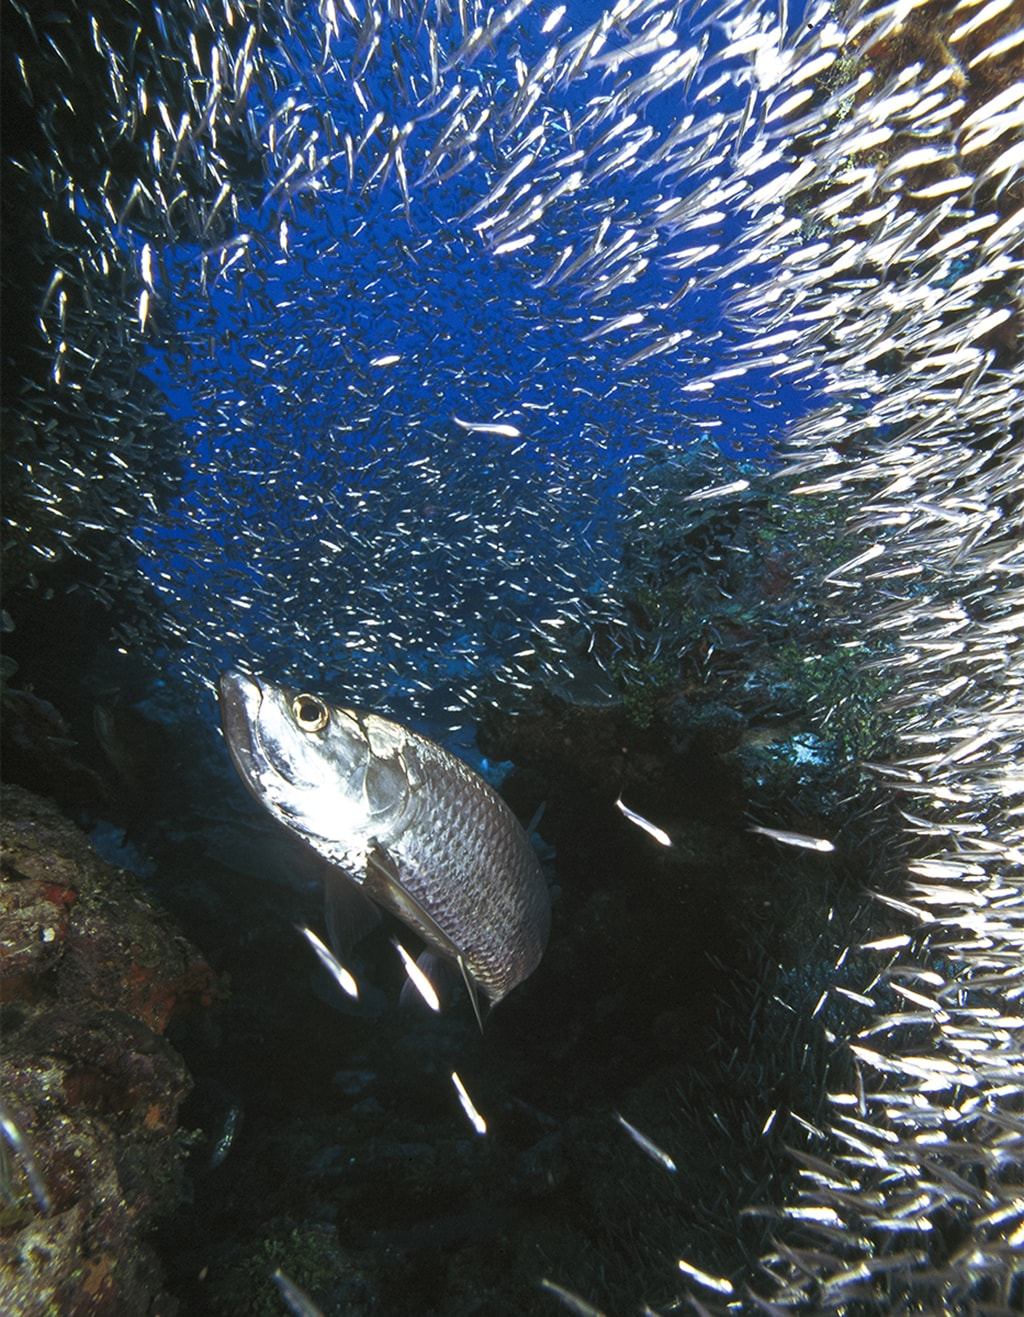 Divers can get quite a thrill when a school of silversides bursts open and scatters as a marauding tarpon lunges through the center of the swirling mass.